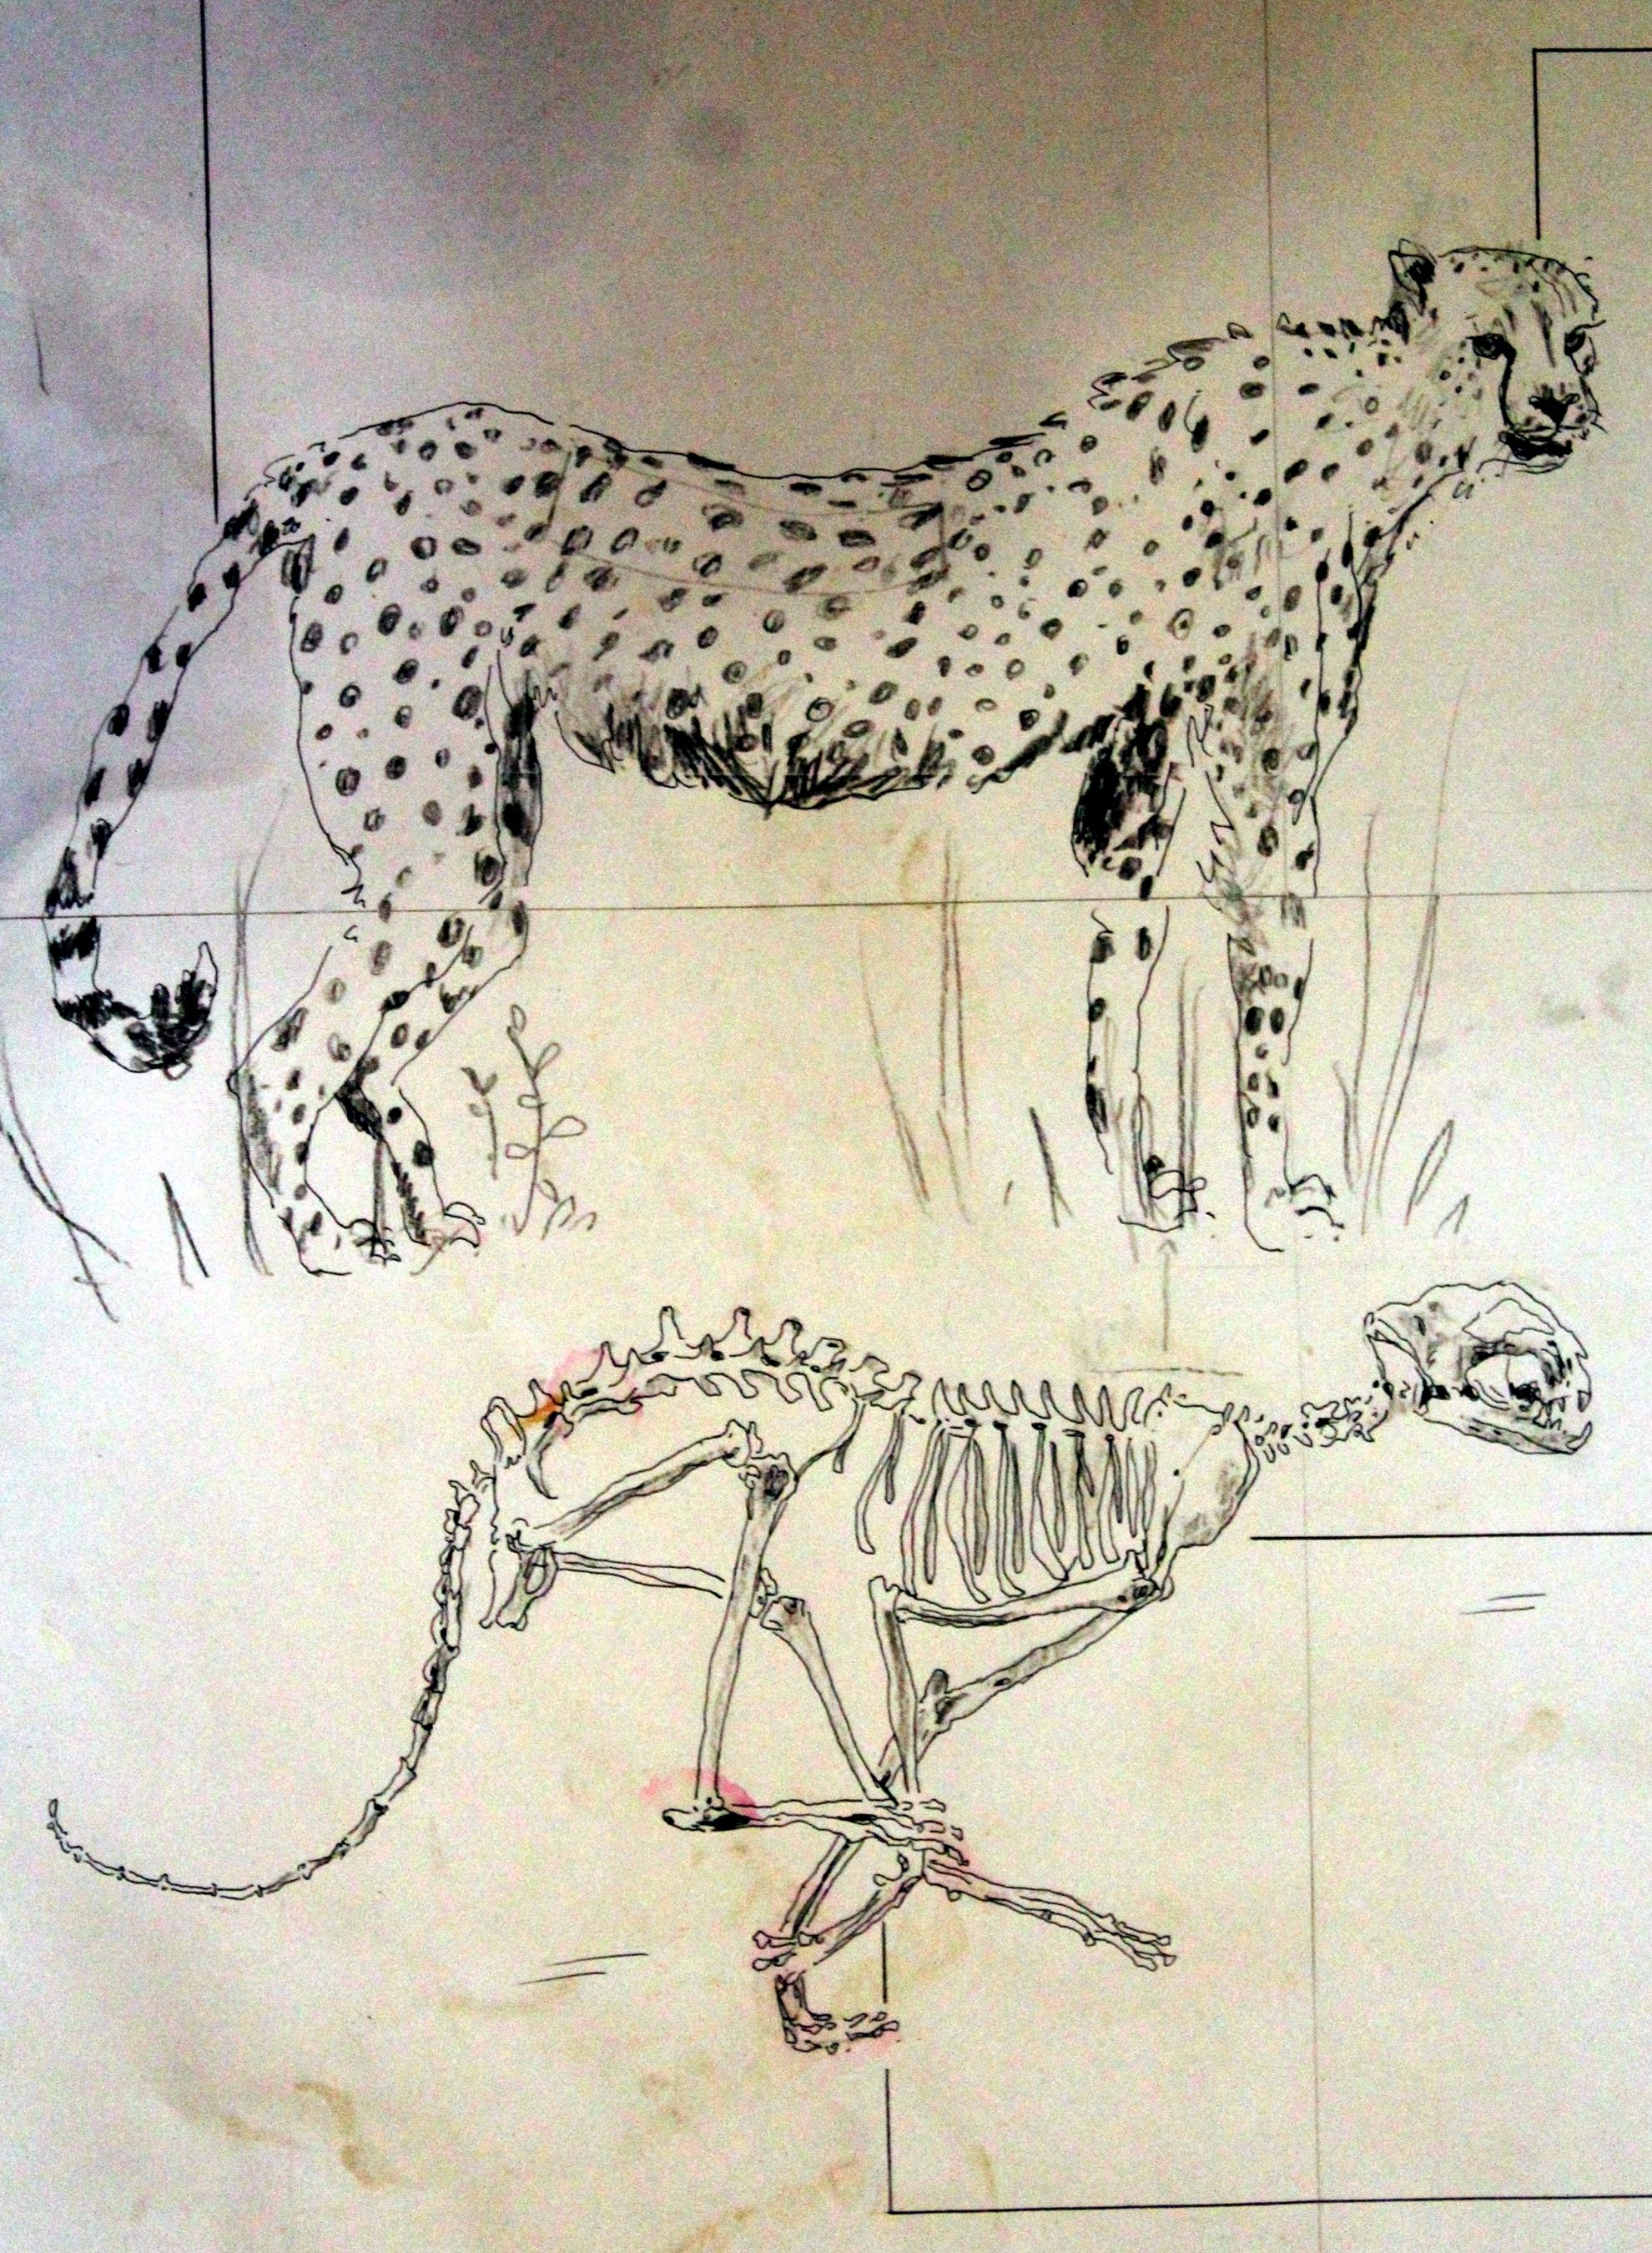 Cheetah and African Wild Dog Anatomy & Hunting | Tatoos | Pinterest ...